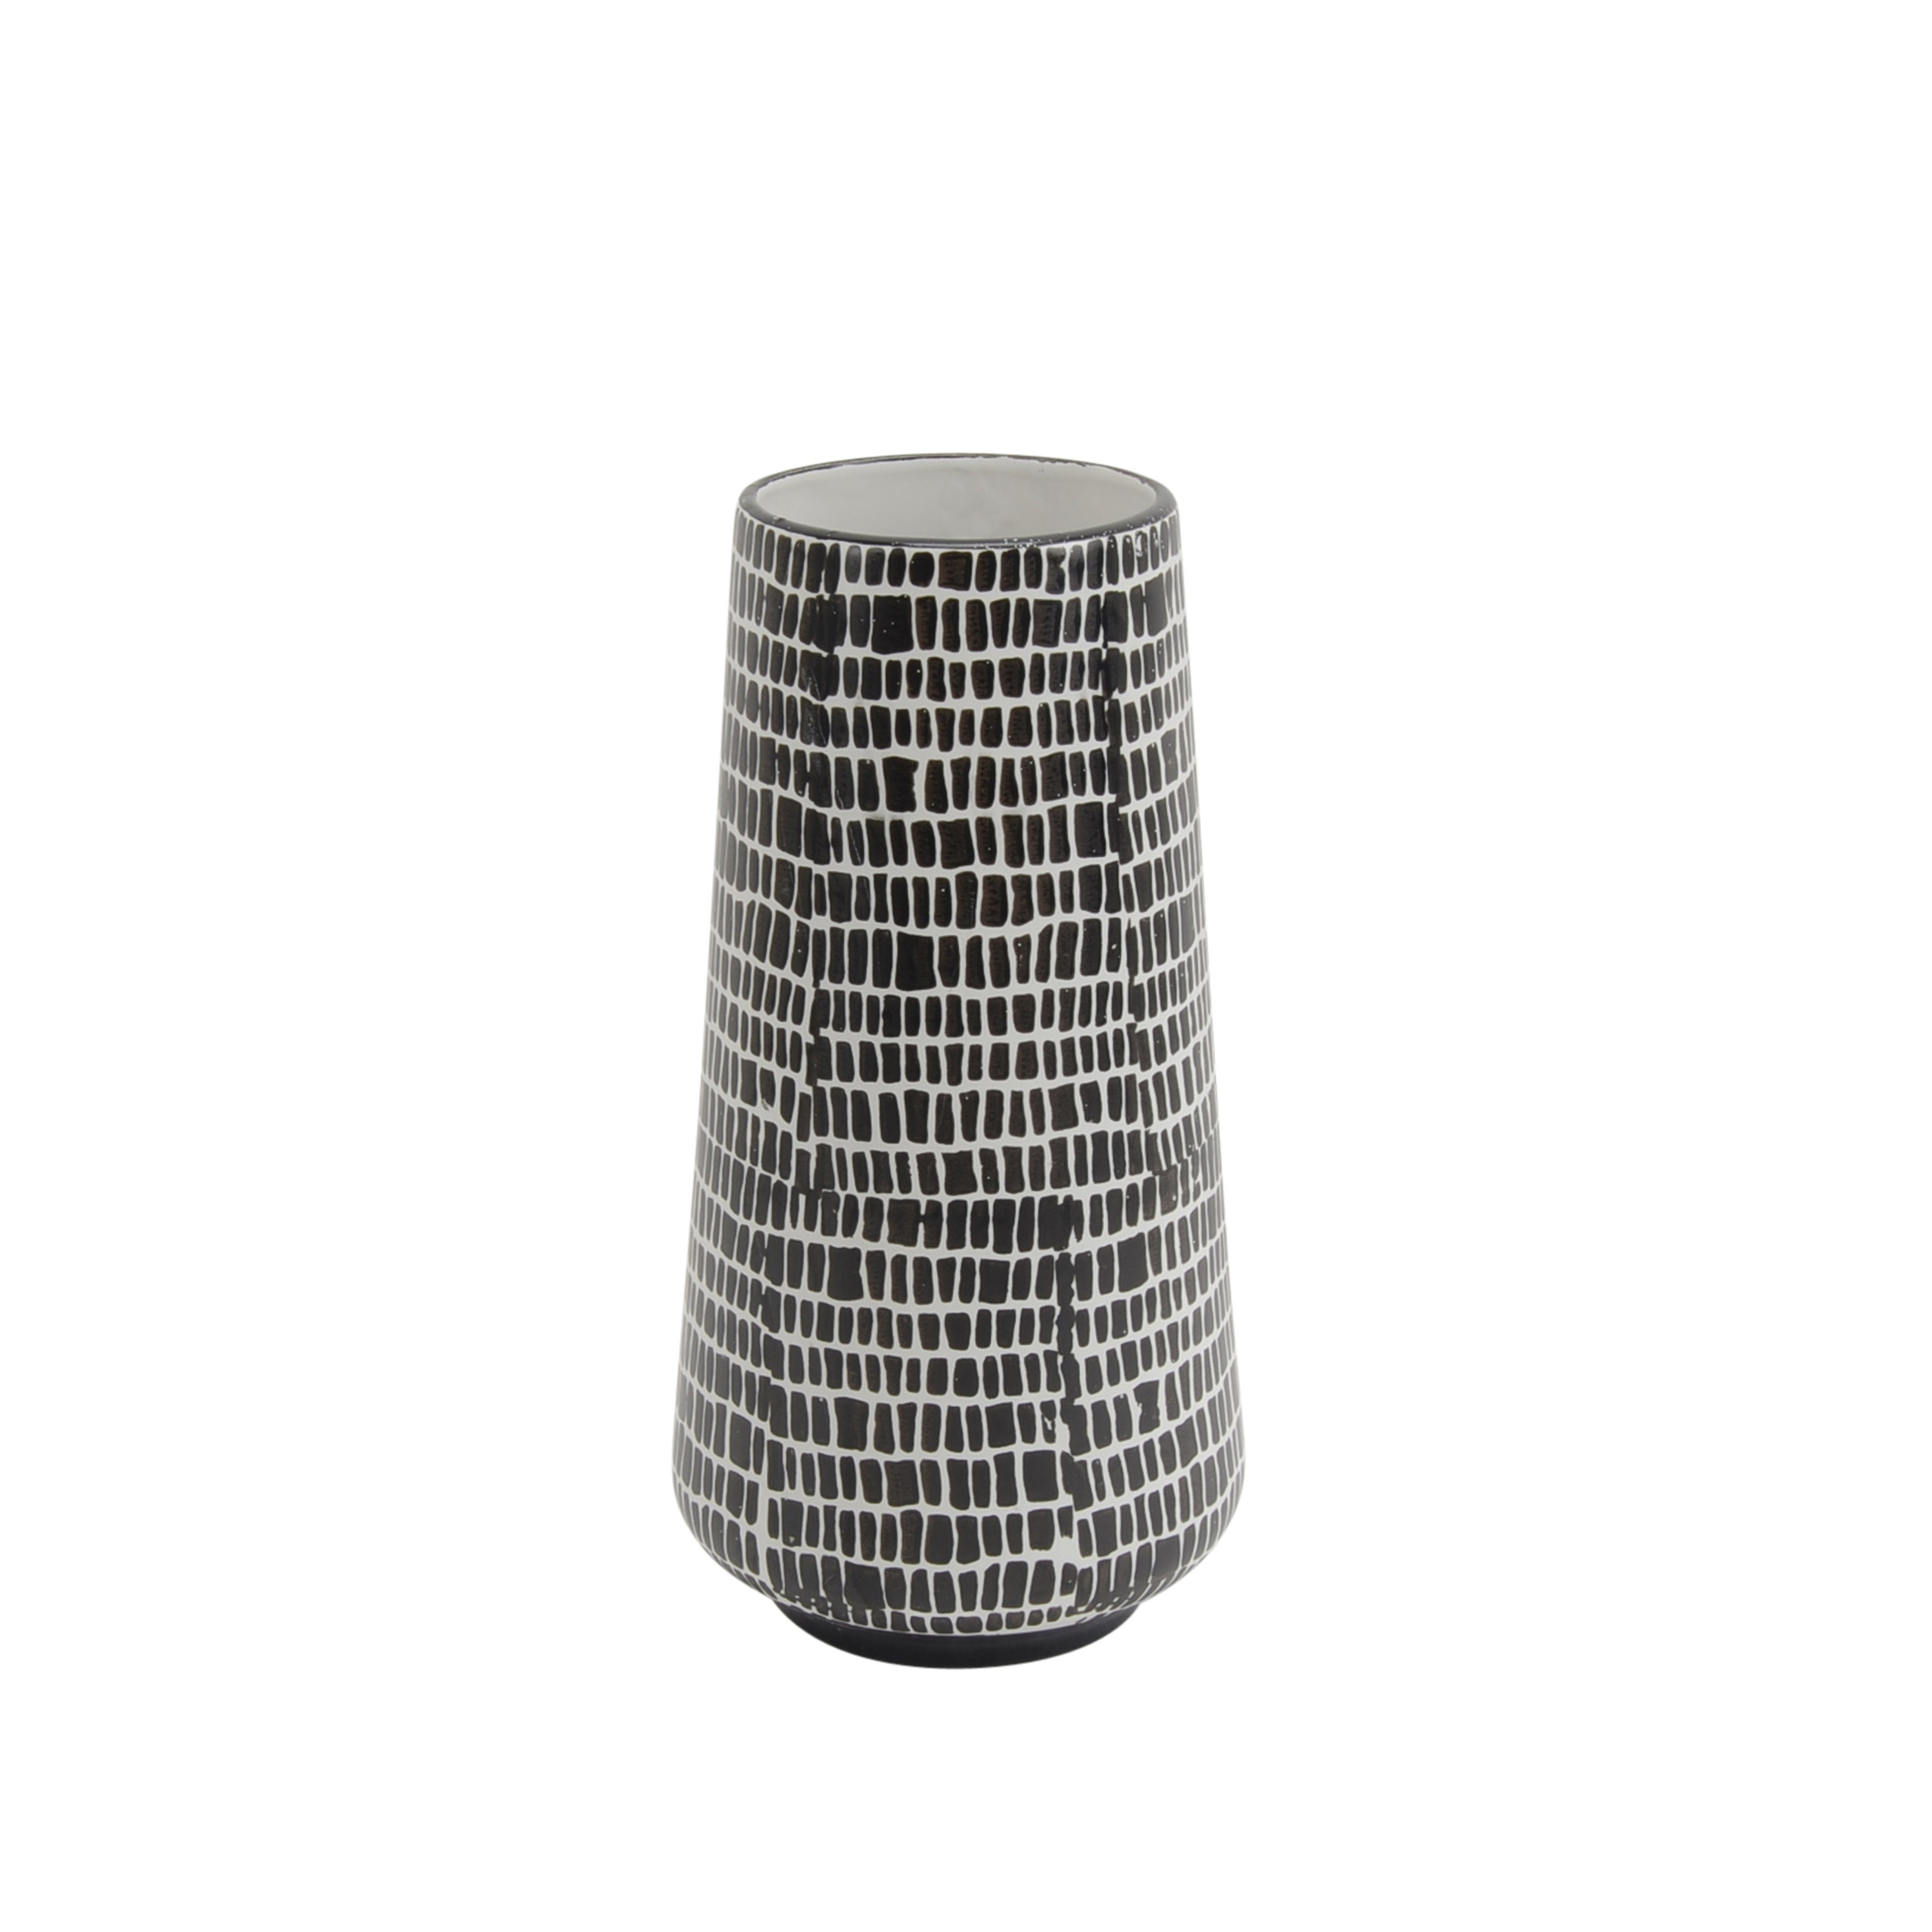 Ceramic Vase with Cobble Pattern Design and Tapered Base, White and Black